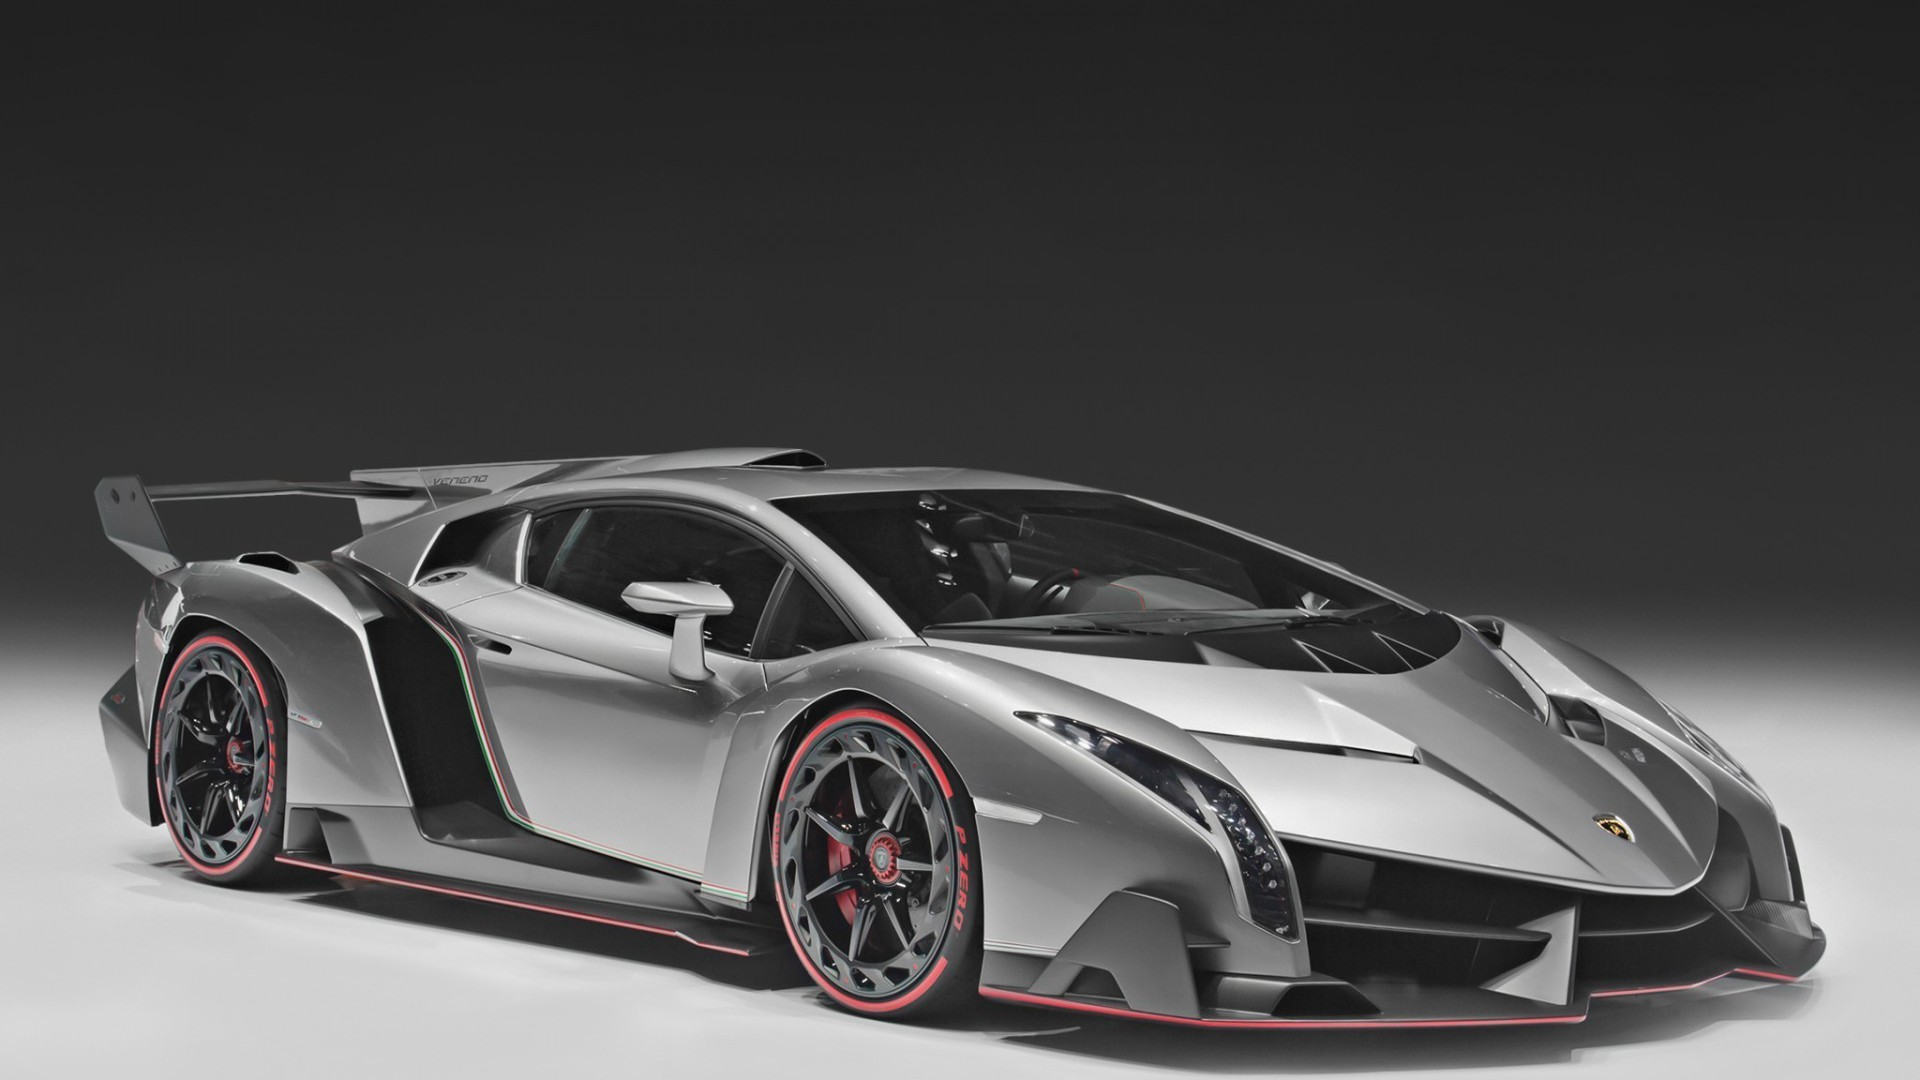 cars lamborghini front angle view veneno wallpaper 15952 pc en. Black Bedroom Furniture Sets. Home Design Ideas